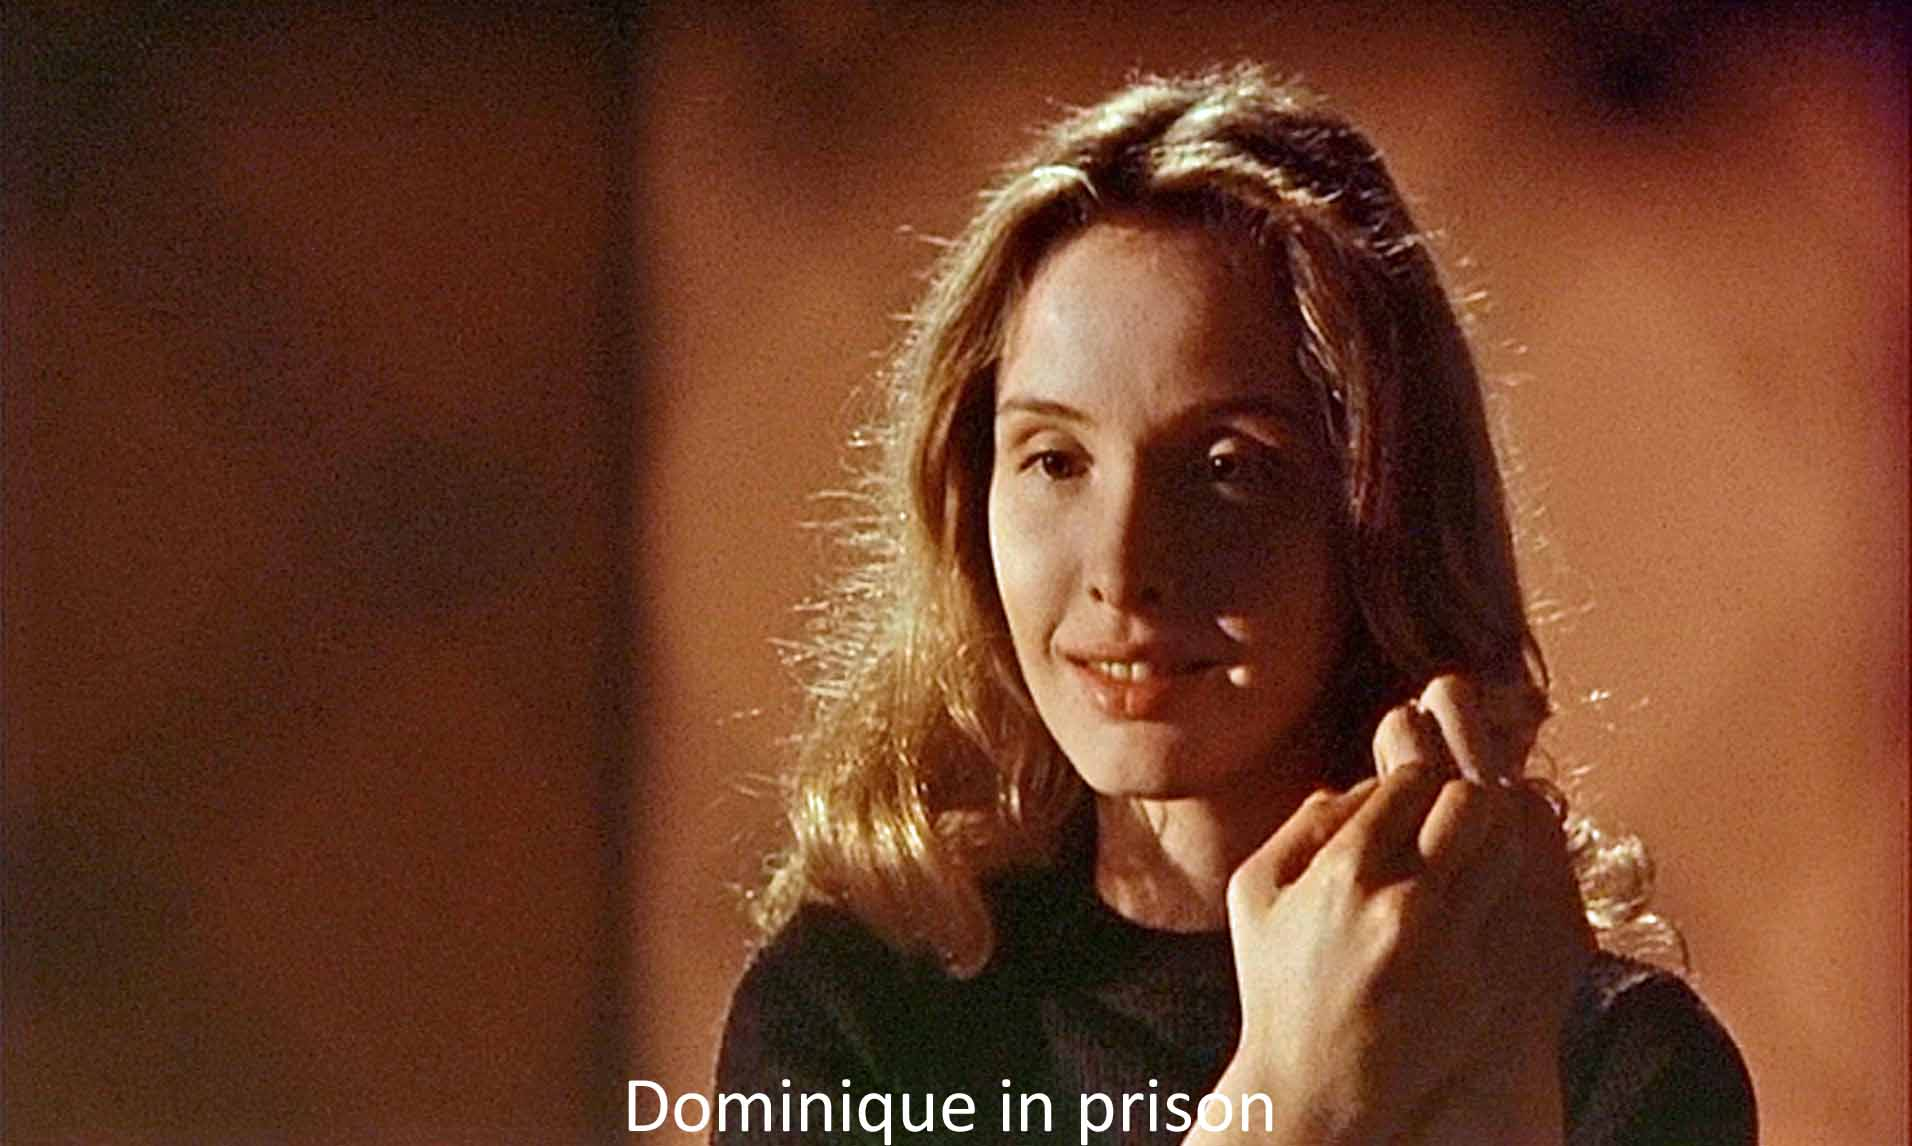 Dominique in prison